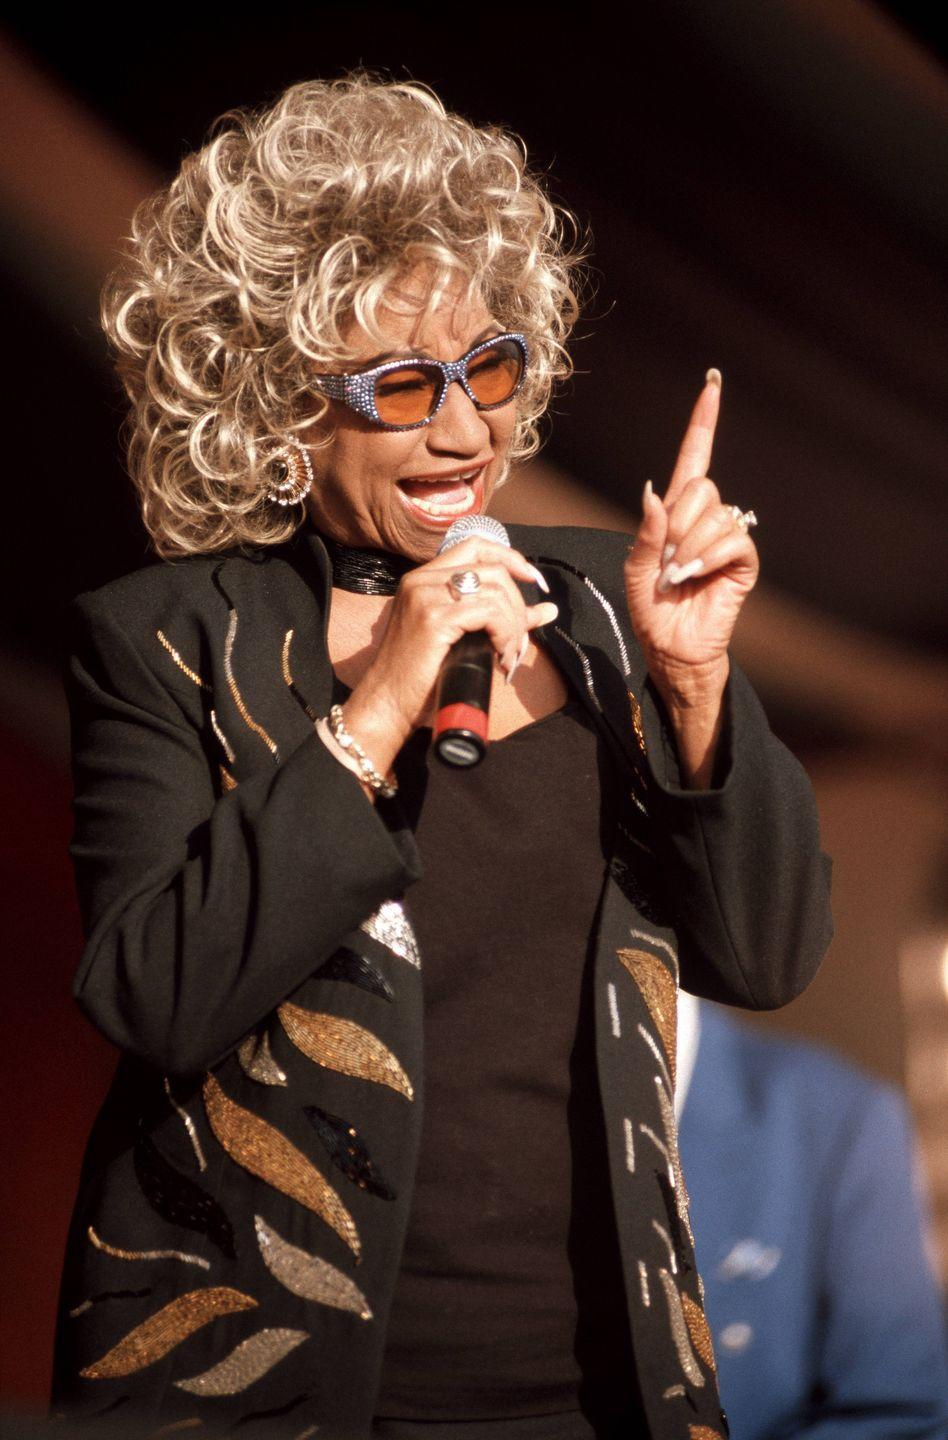 <p>Throughout her life, Cruz was honored with three different doctorates: one honorary doctorate of music from Yale (1989), Florida International University (1992), and University of Miami (in 1999).</p>